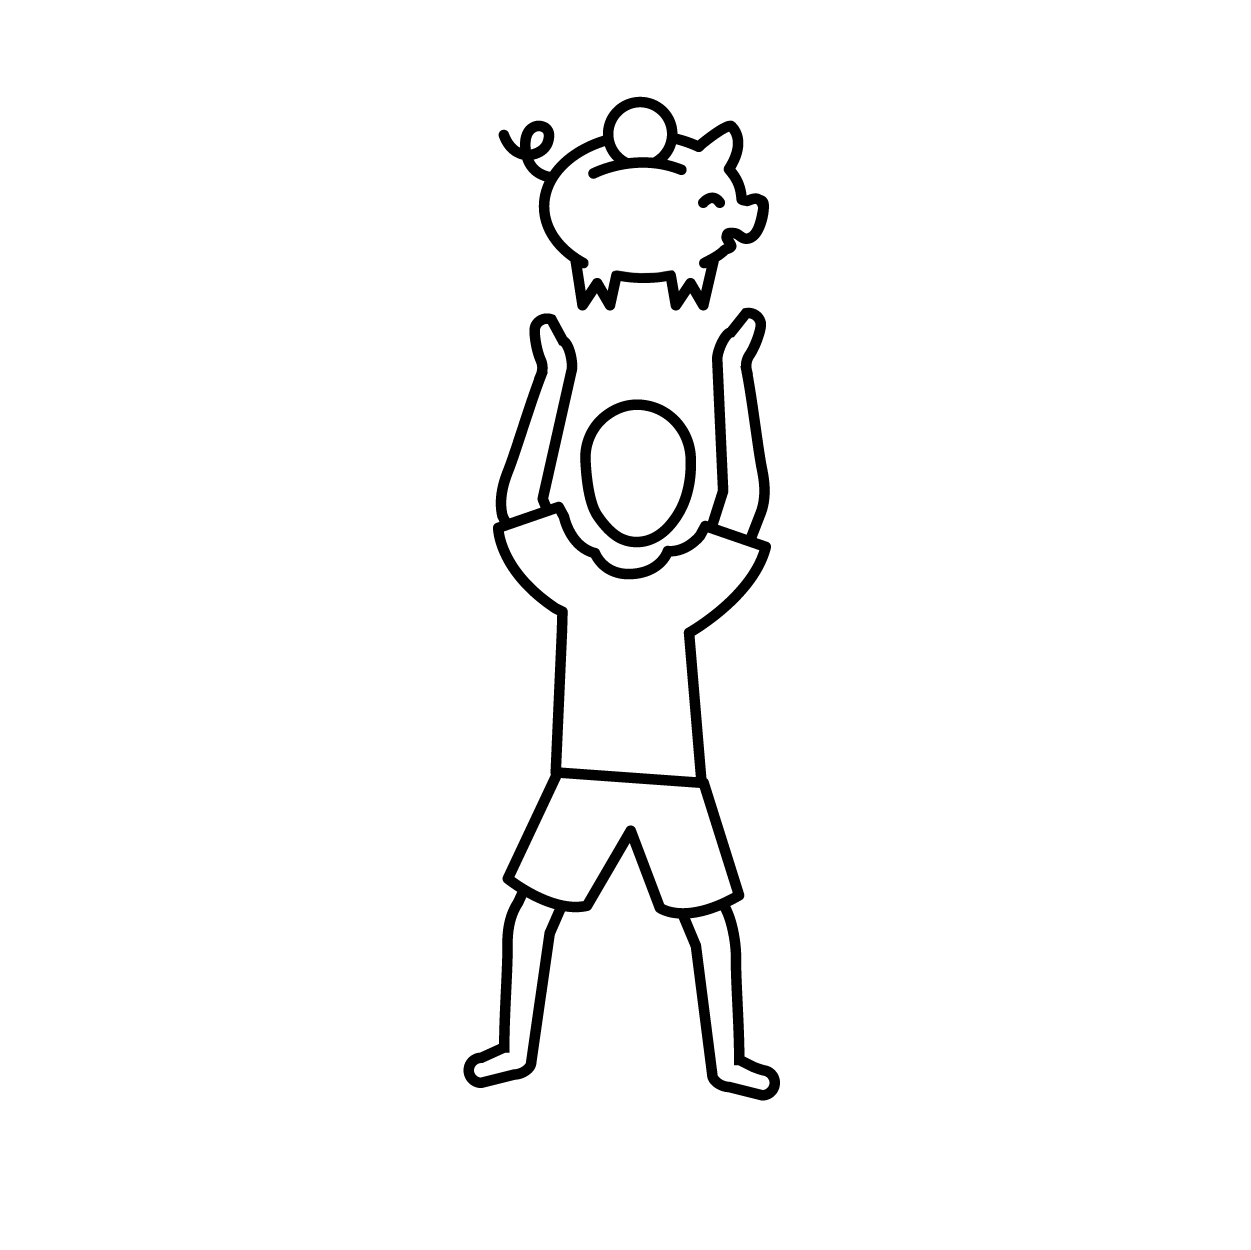 Fundraise Icons-piggy-bank